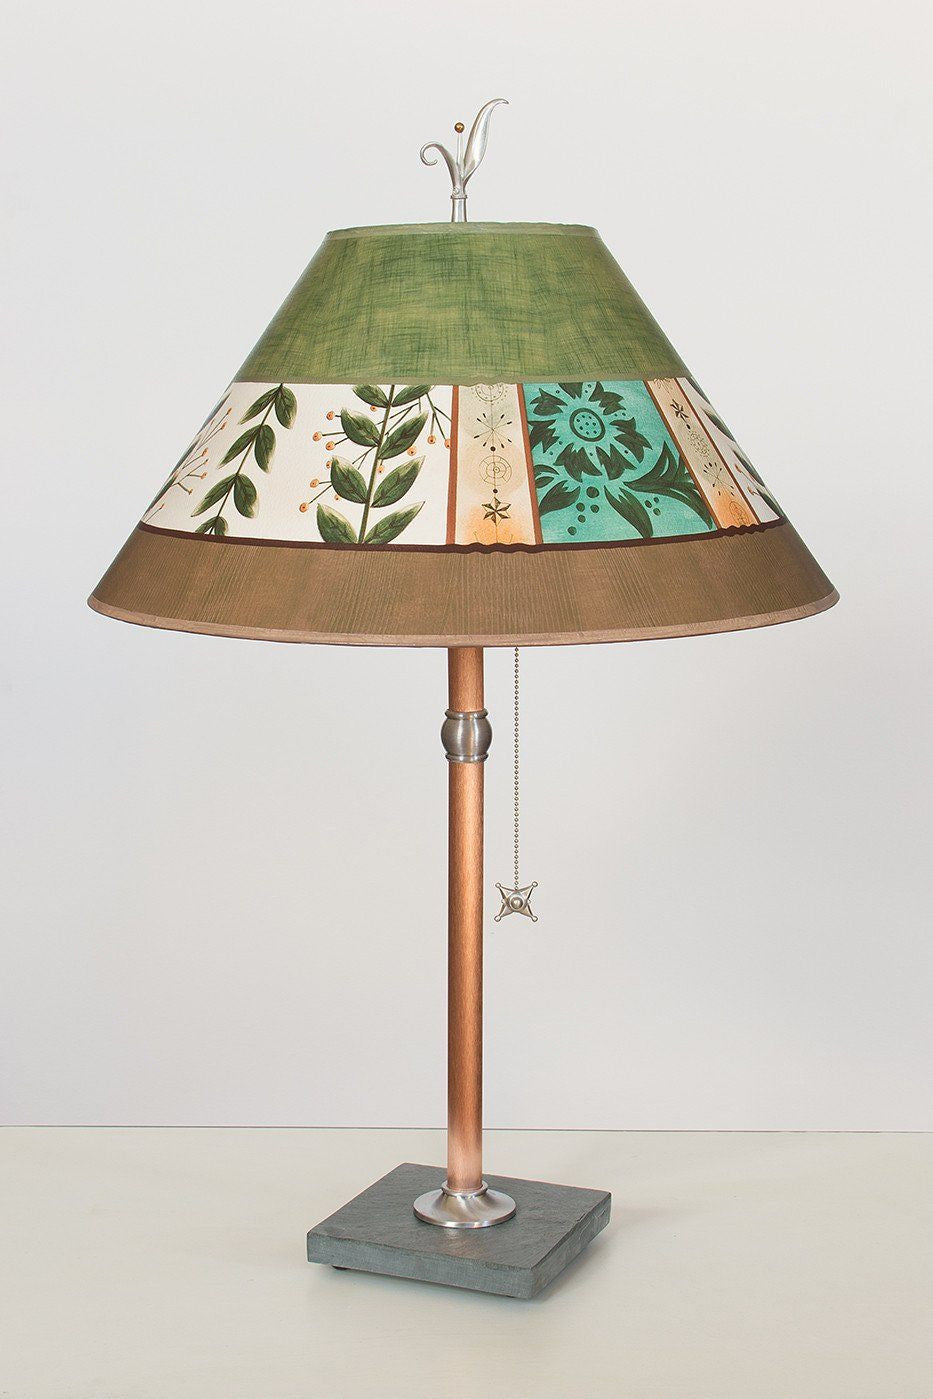 Copper Table Lamp on Vermont Slate with Large Conical Shade in Spring Medley Apple